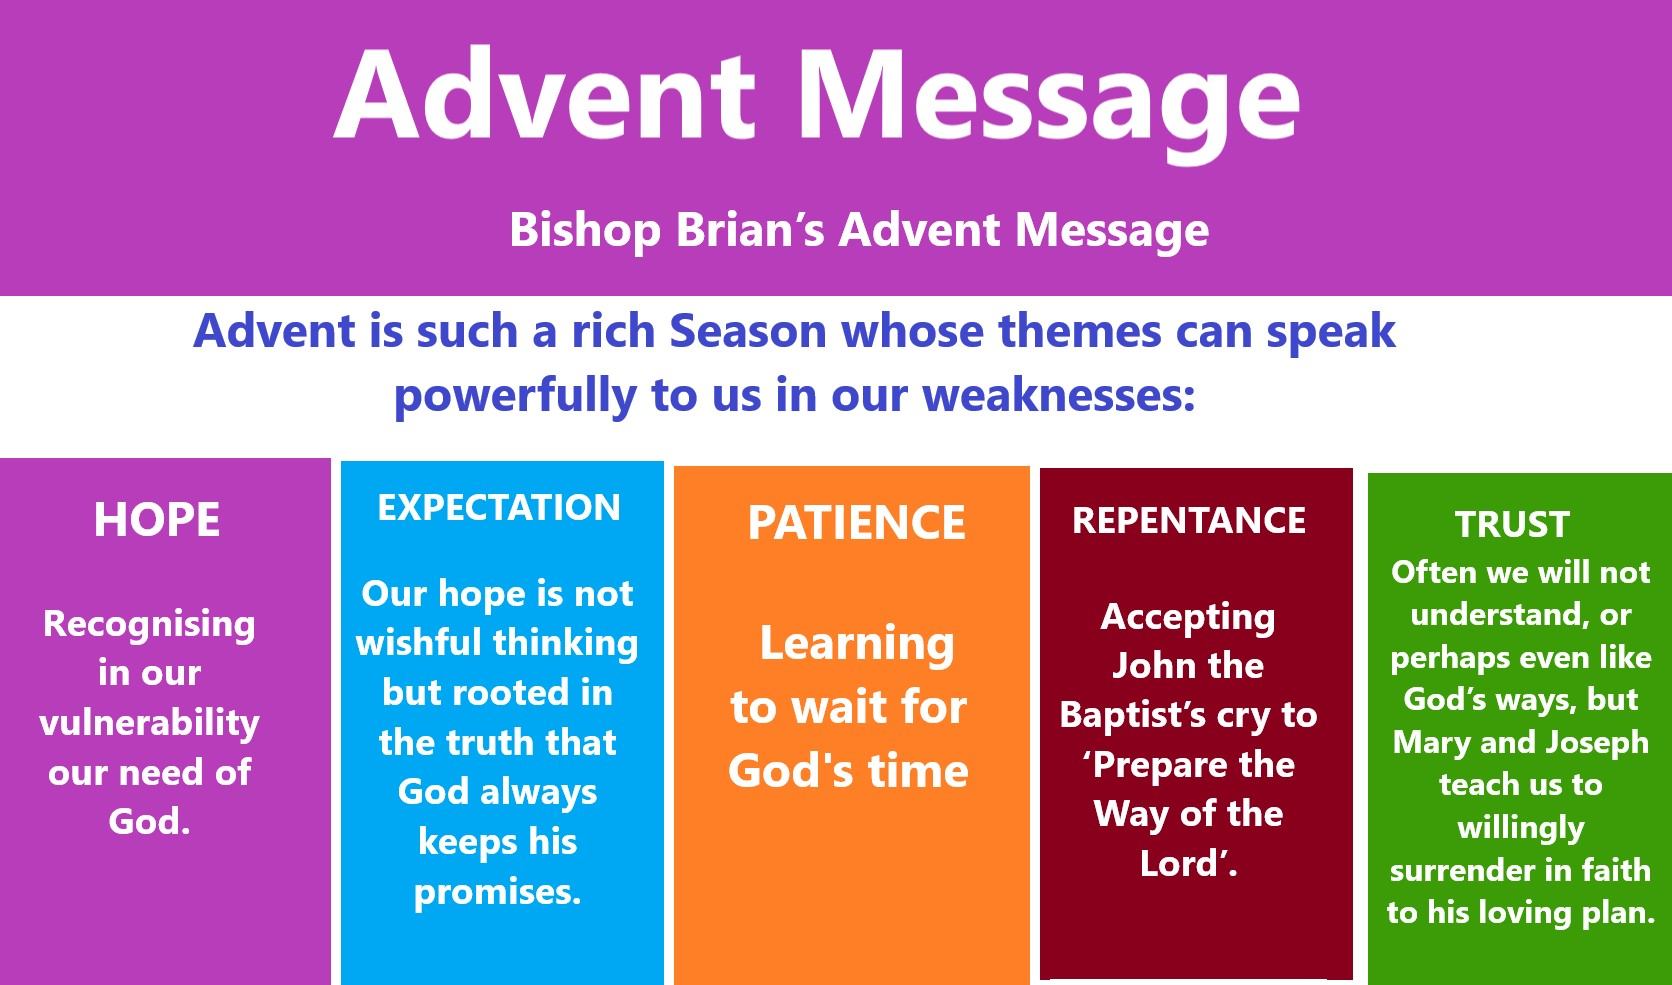 Bishop Brian's Advent Message